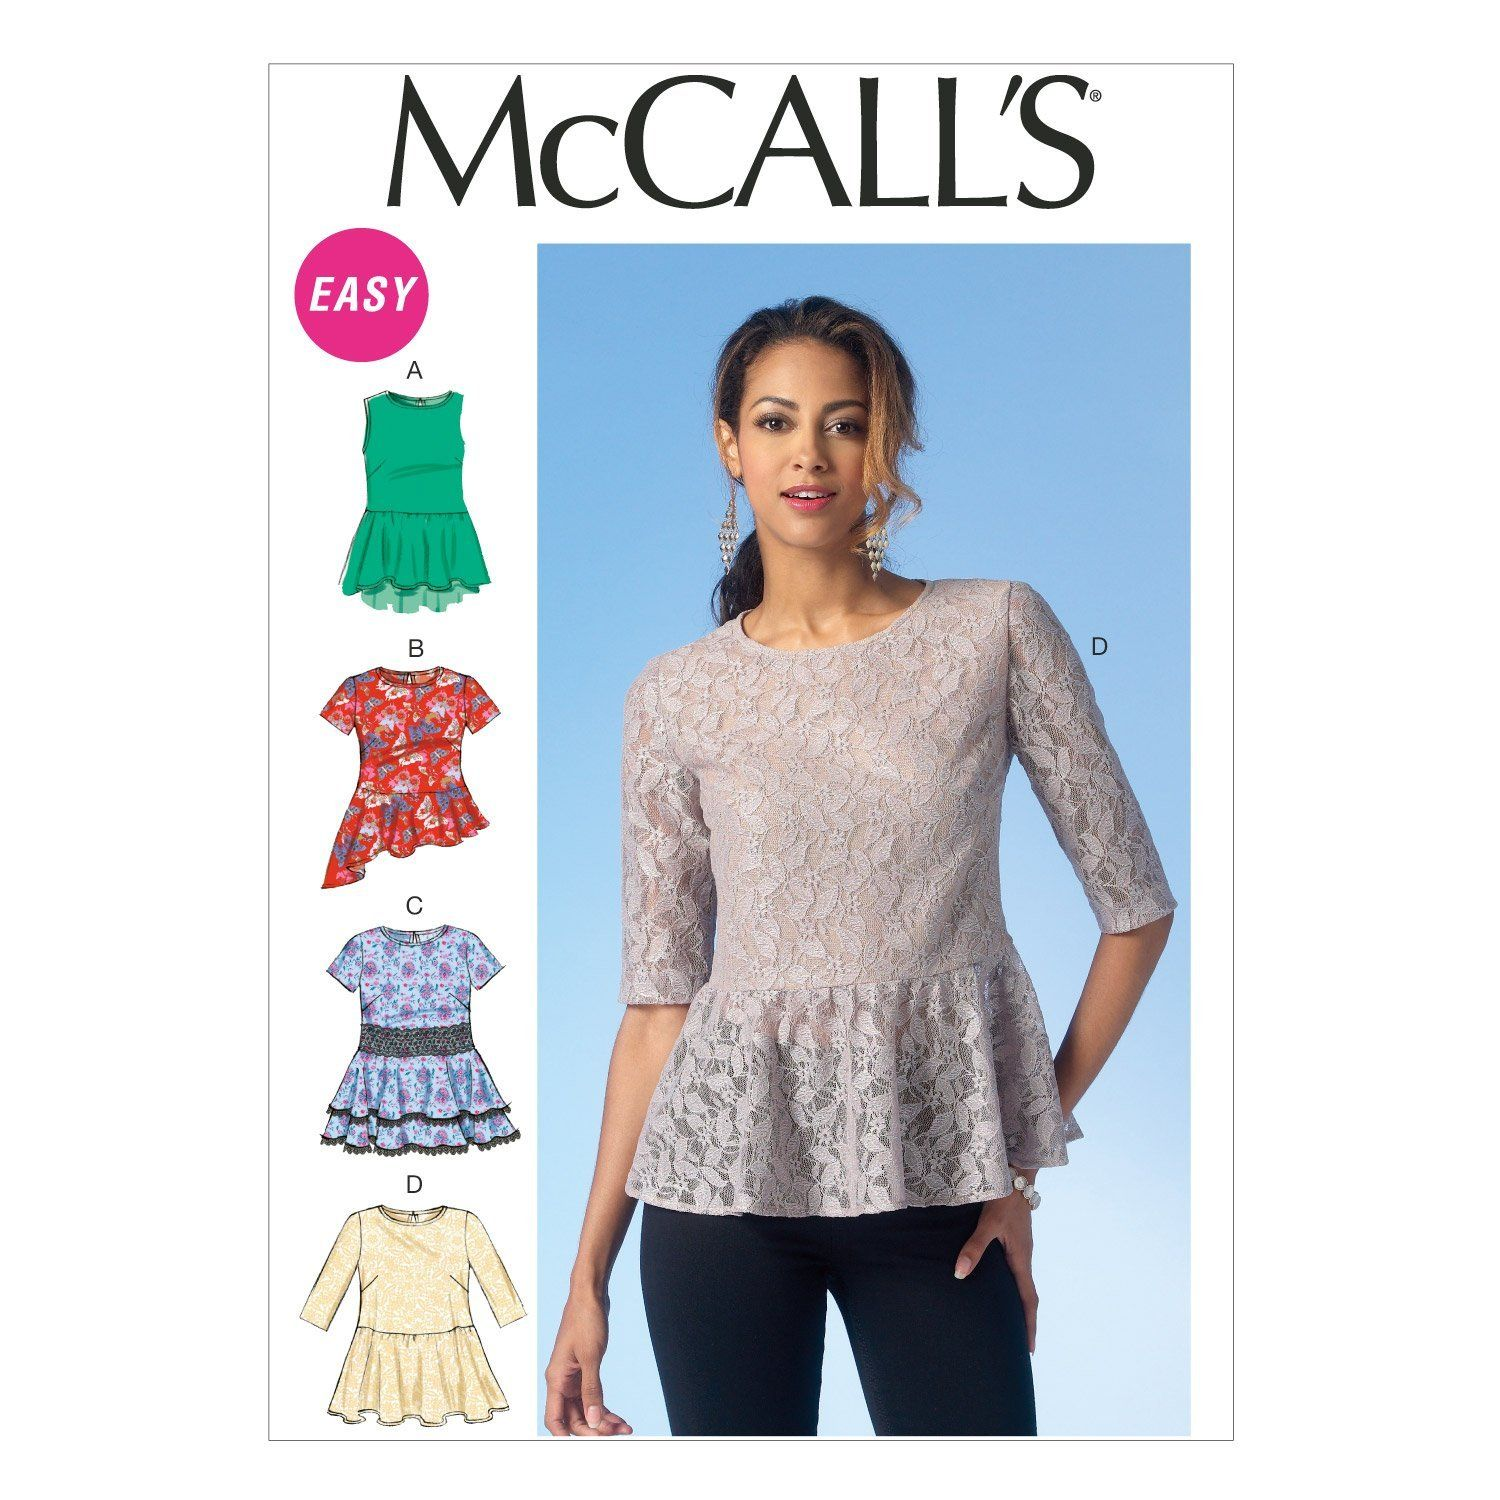 Colorful Mccalls Nähmustern Katalog Composition - Decke Stricken ...